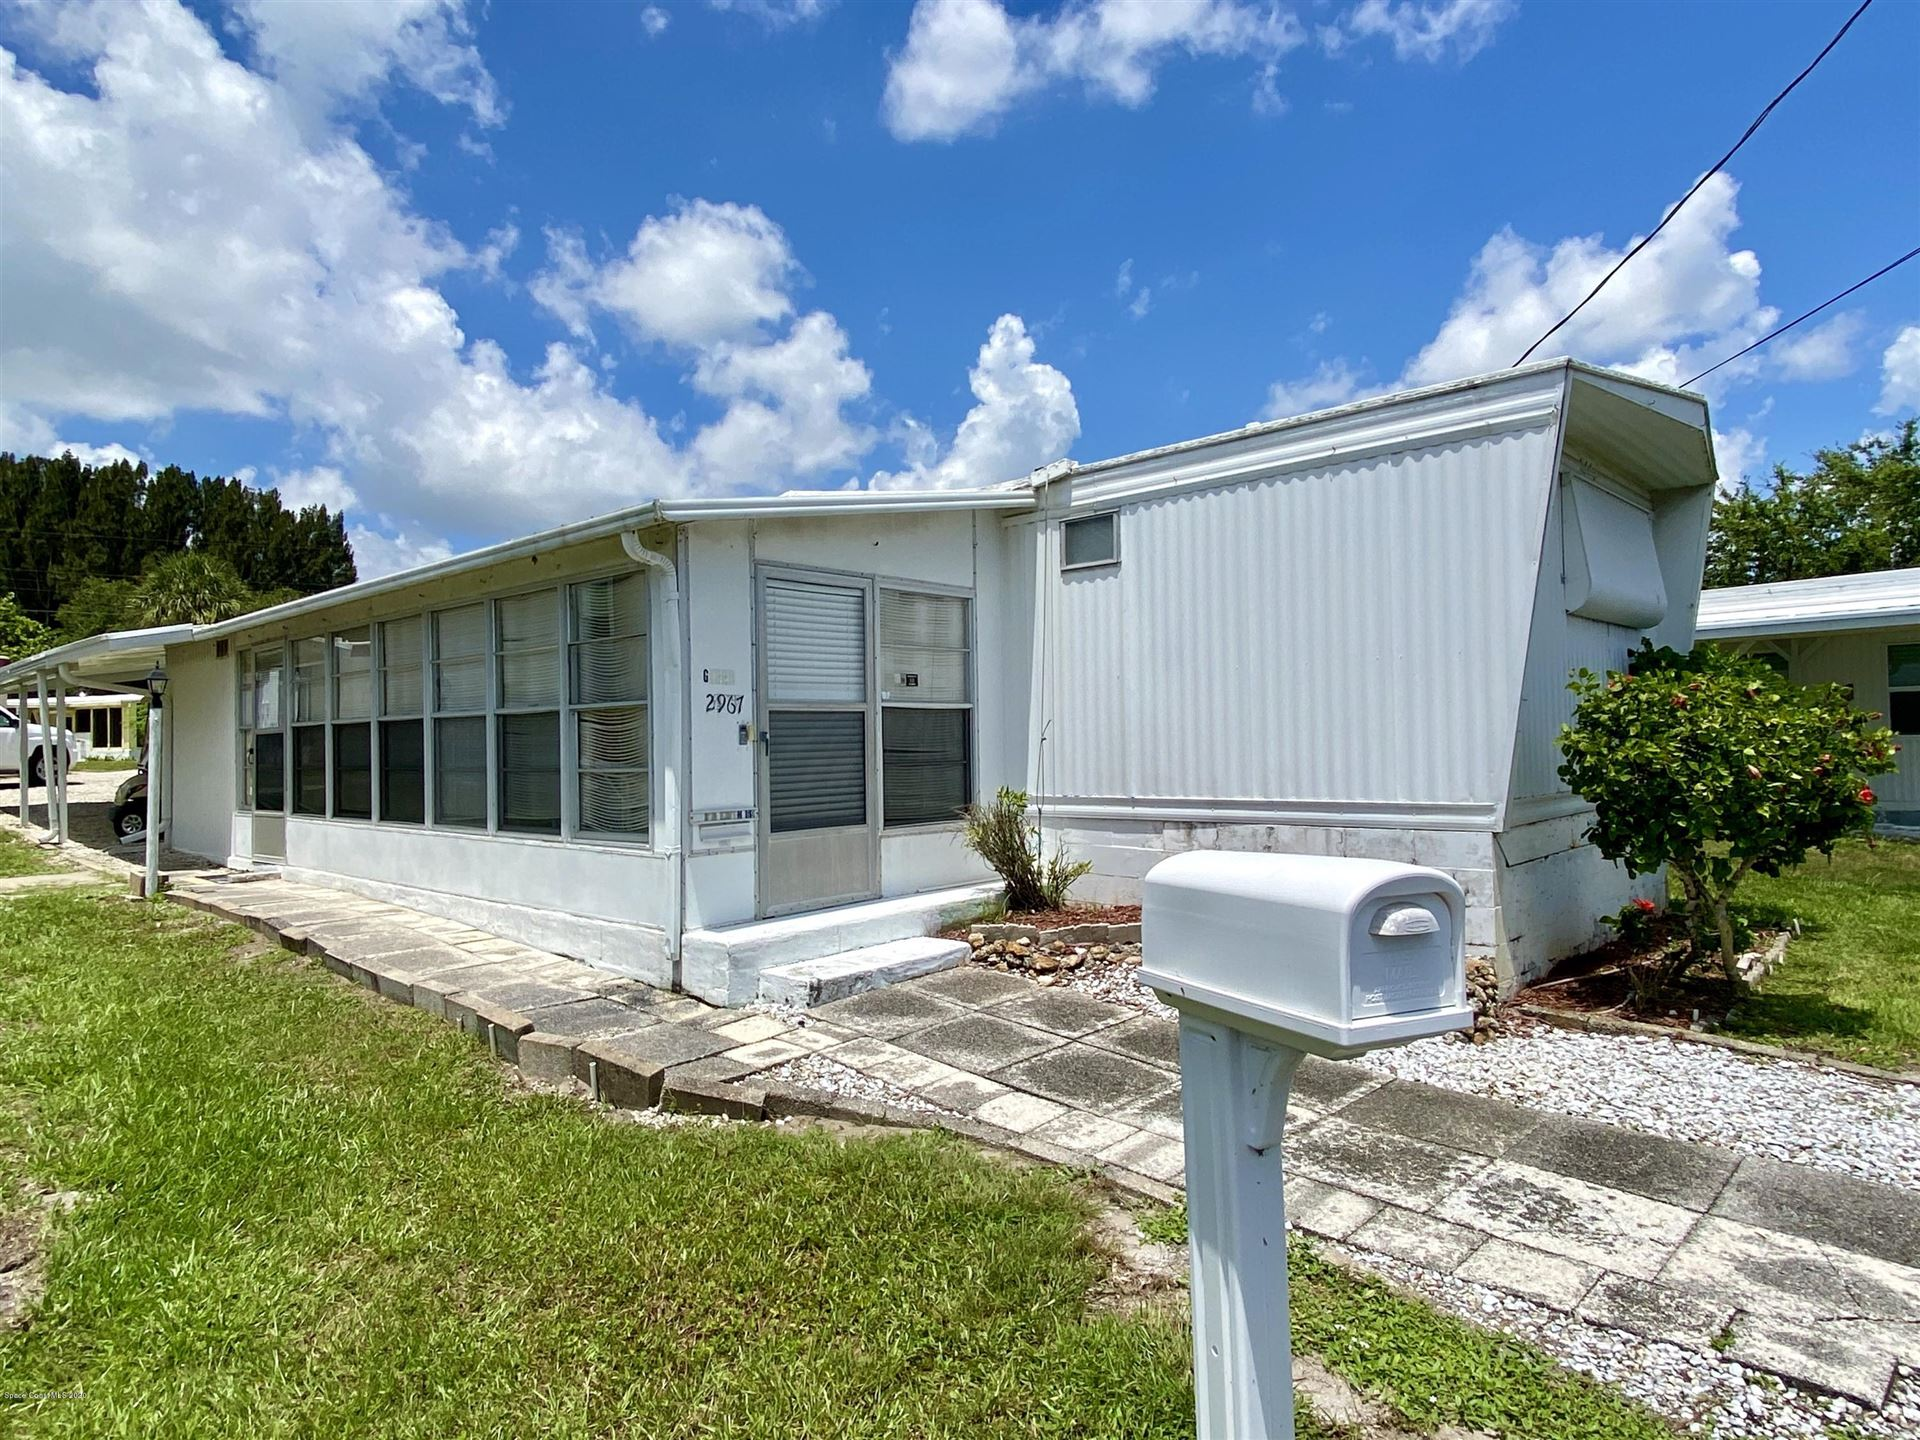 2967 Indian River Drive, Palm Bay, FL 32905 - #: 889943